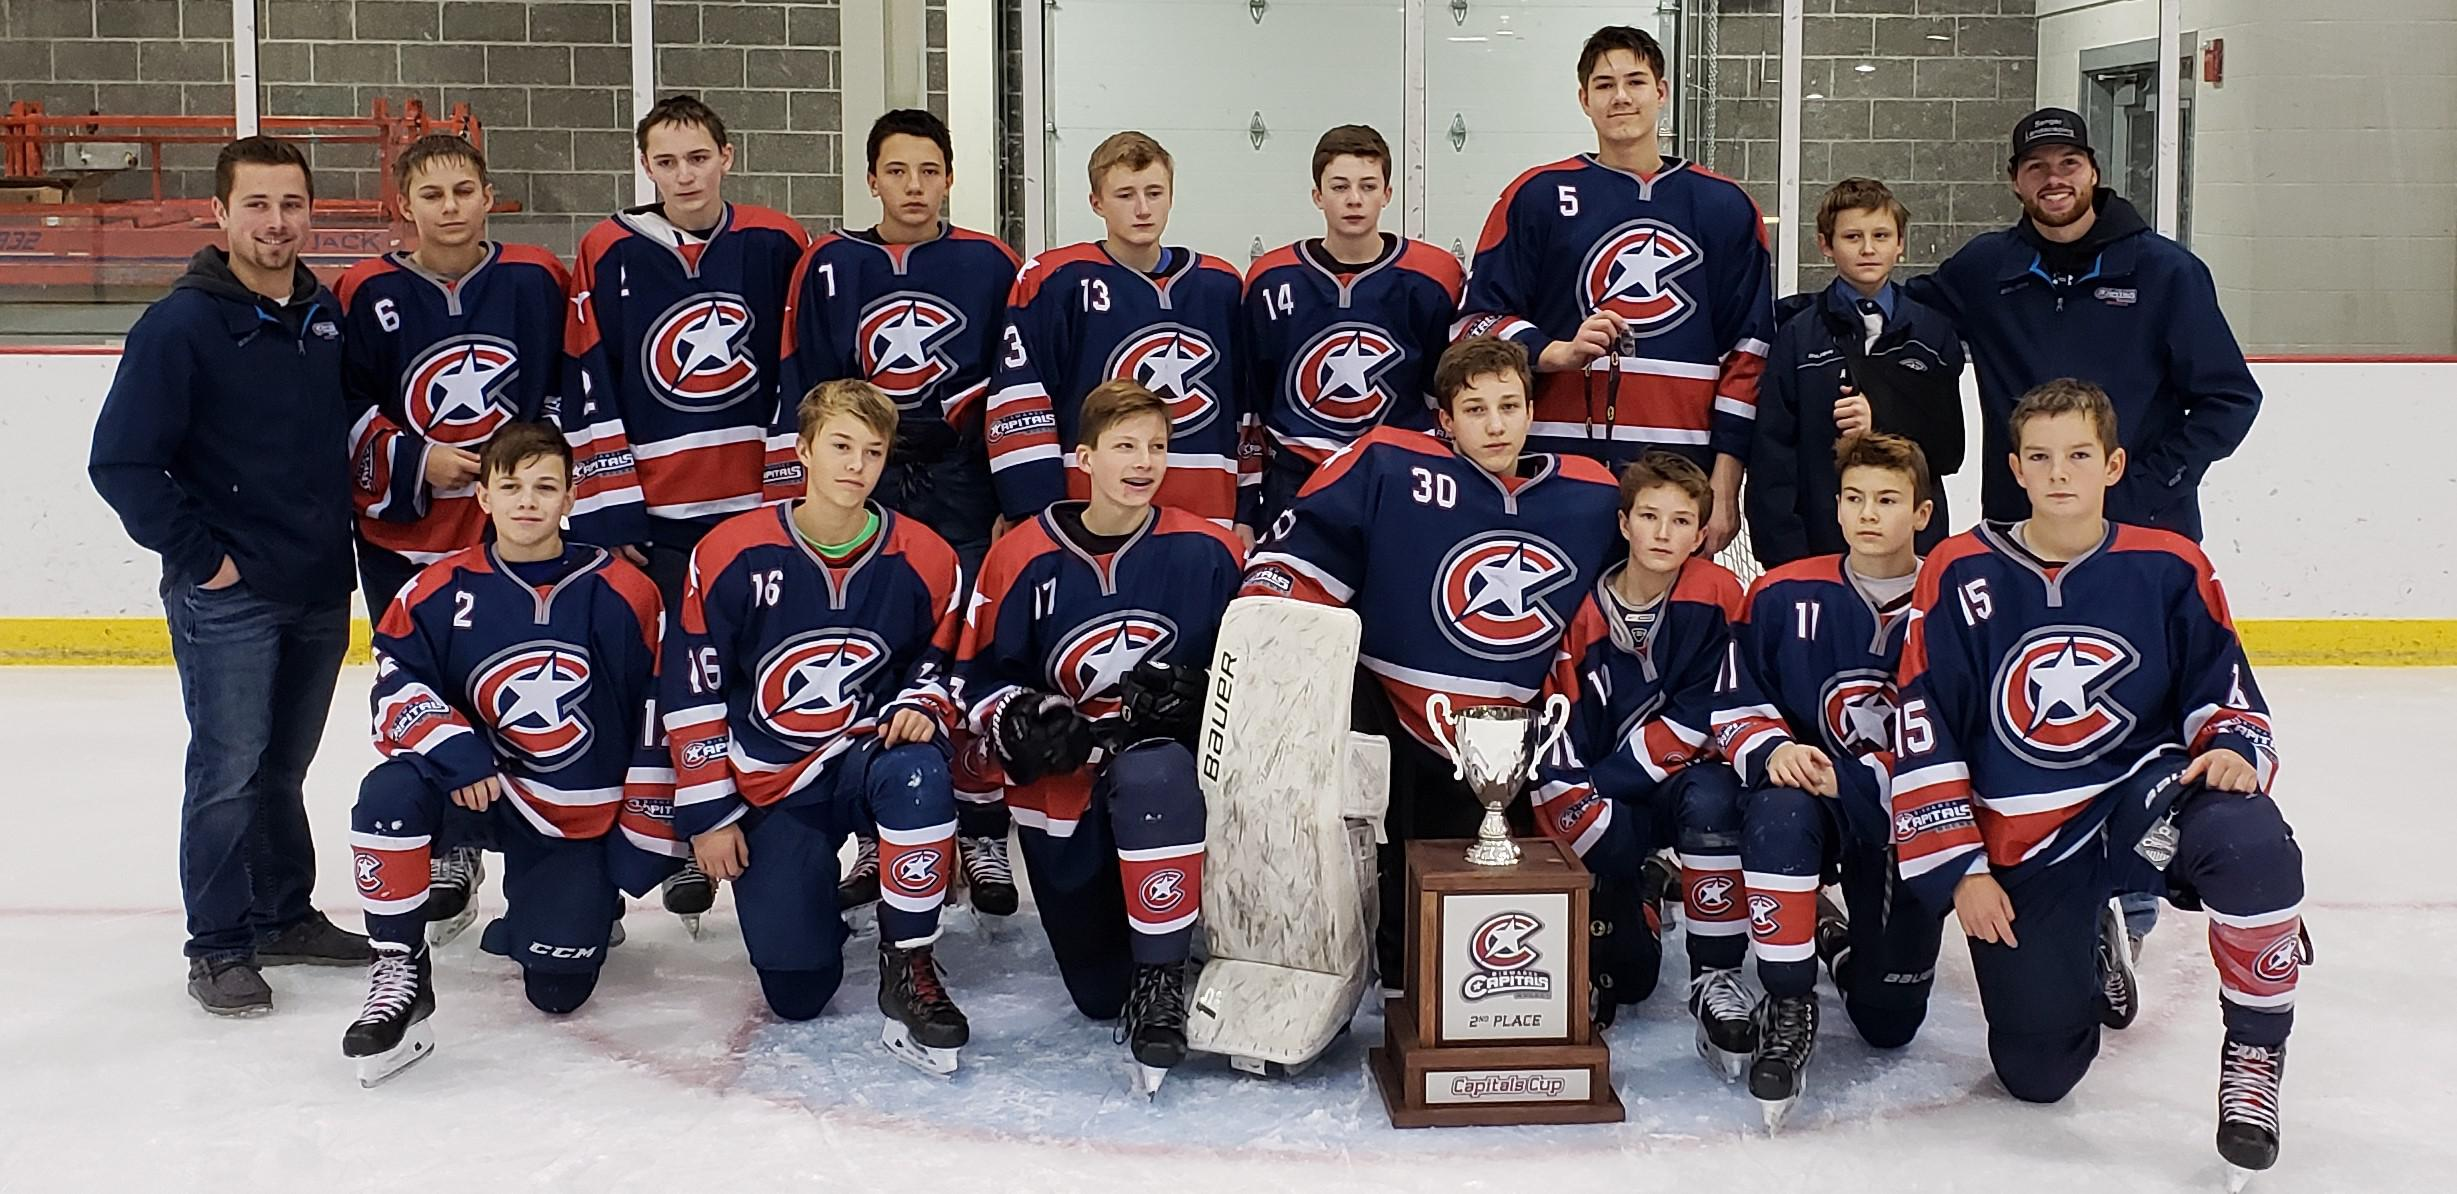 The Bismarck Capitals Bantam B1 team took 2nd place at the Capitals Cup Tournament.  Congratulations!!